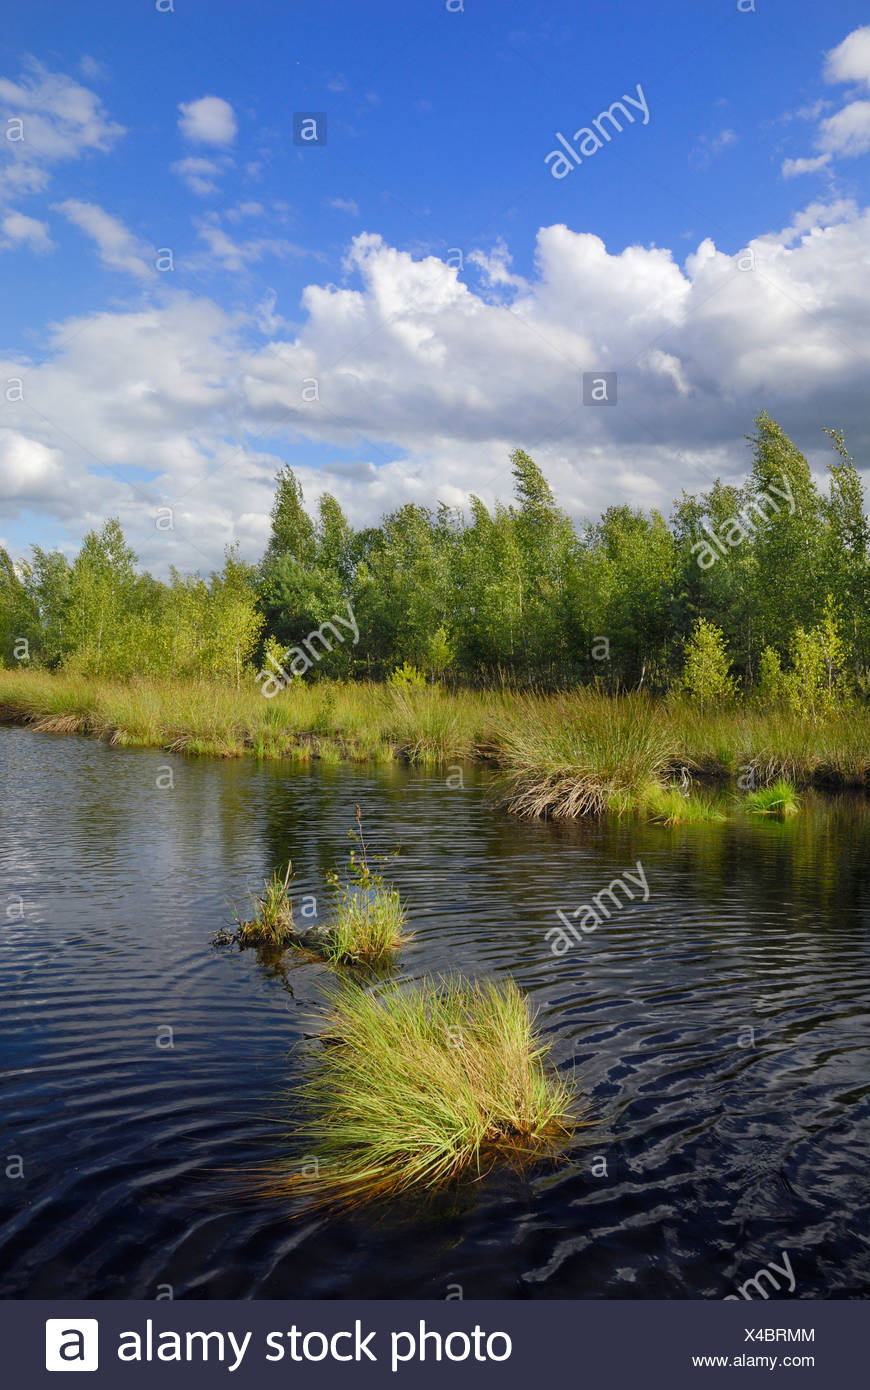 Moor landscape with pond and birch grove (Betula pubescens), foothills of the Alps, Grundbeckenmoor area, Nicklheim, Bavaria, G Stock Photo